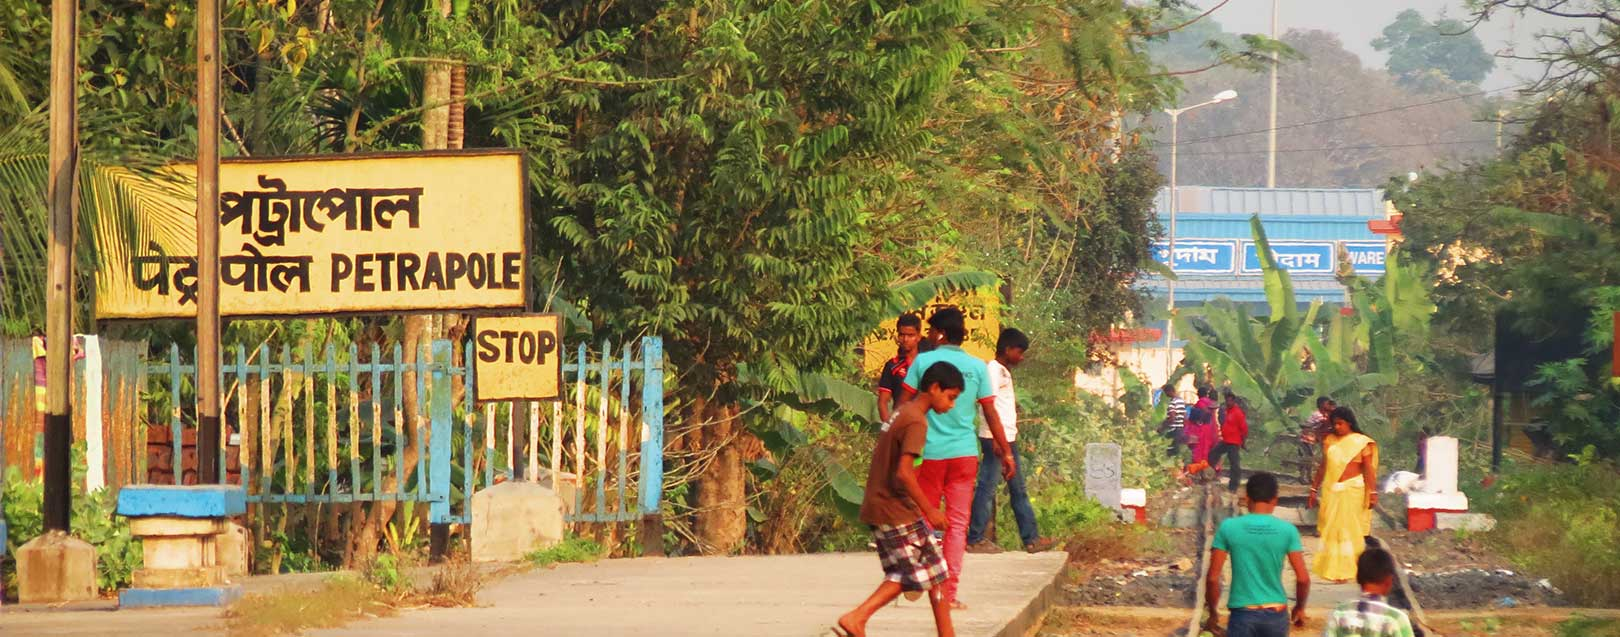 Indo-Bangla, Petrapole-Benapole Integrated check post to operate from Aug 1